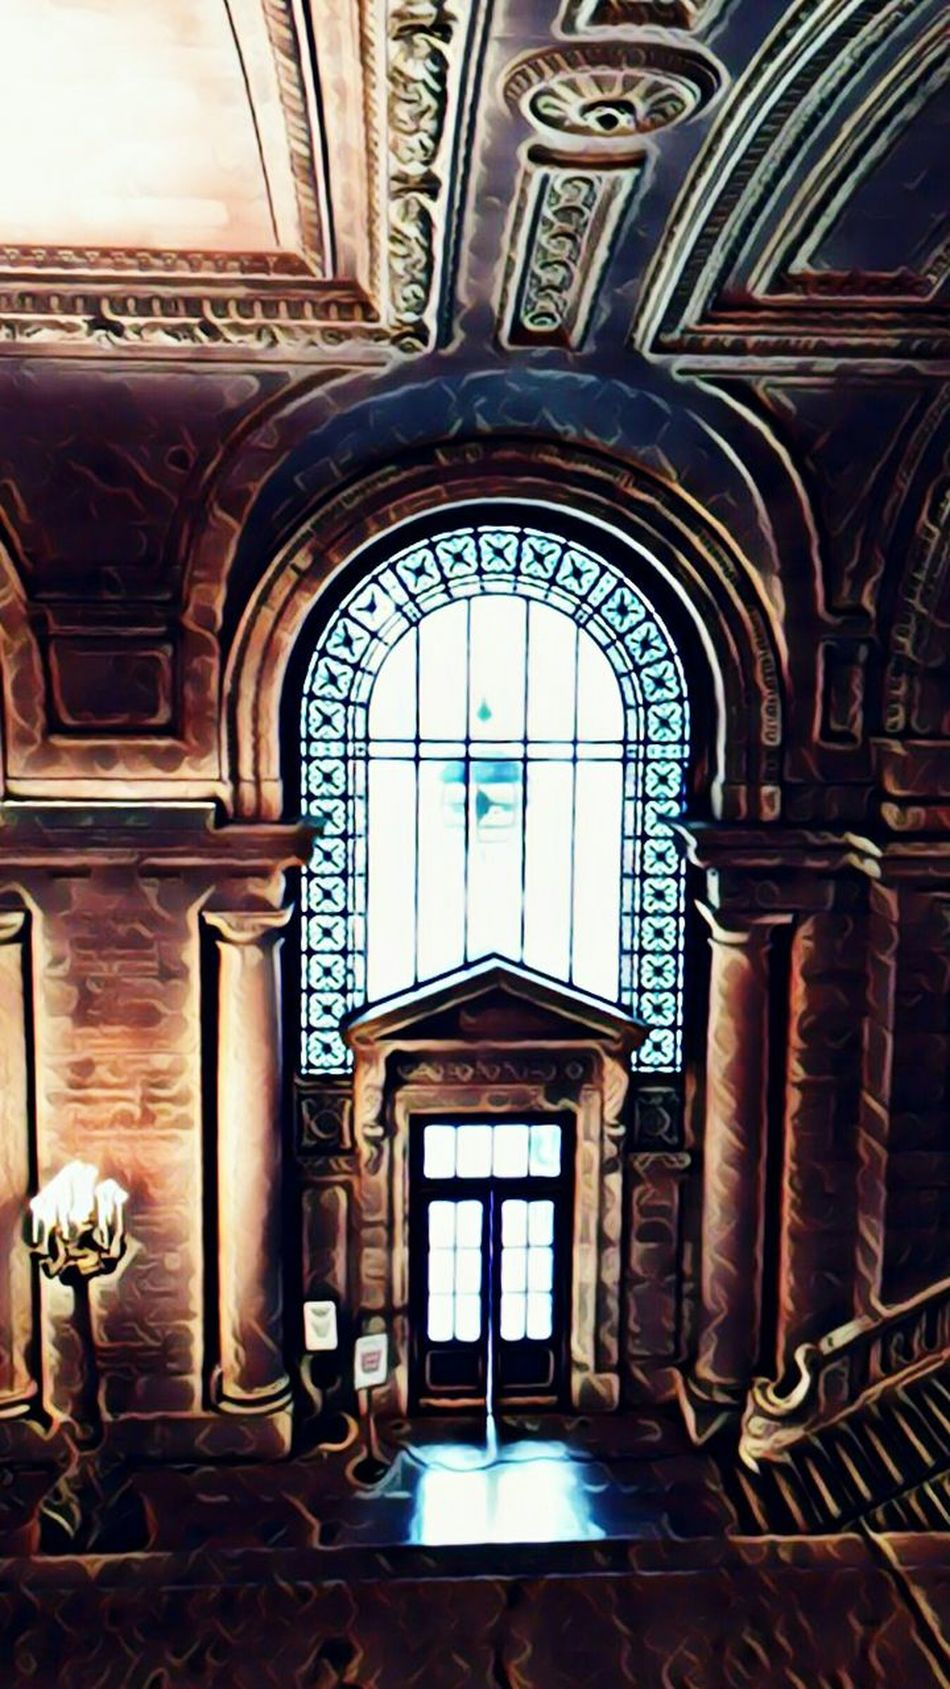 New York Public Library. Architecturelovers Enterance Detailphotography Mesmerized